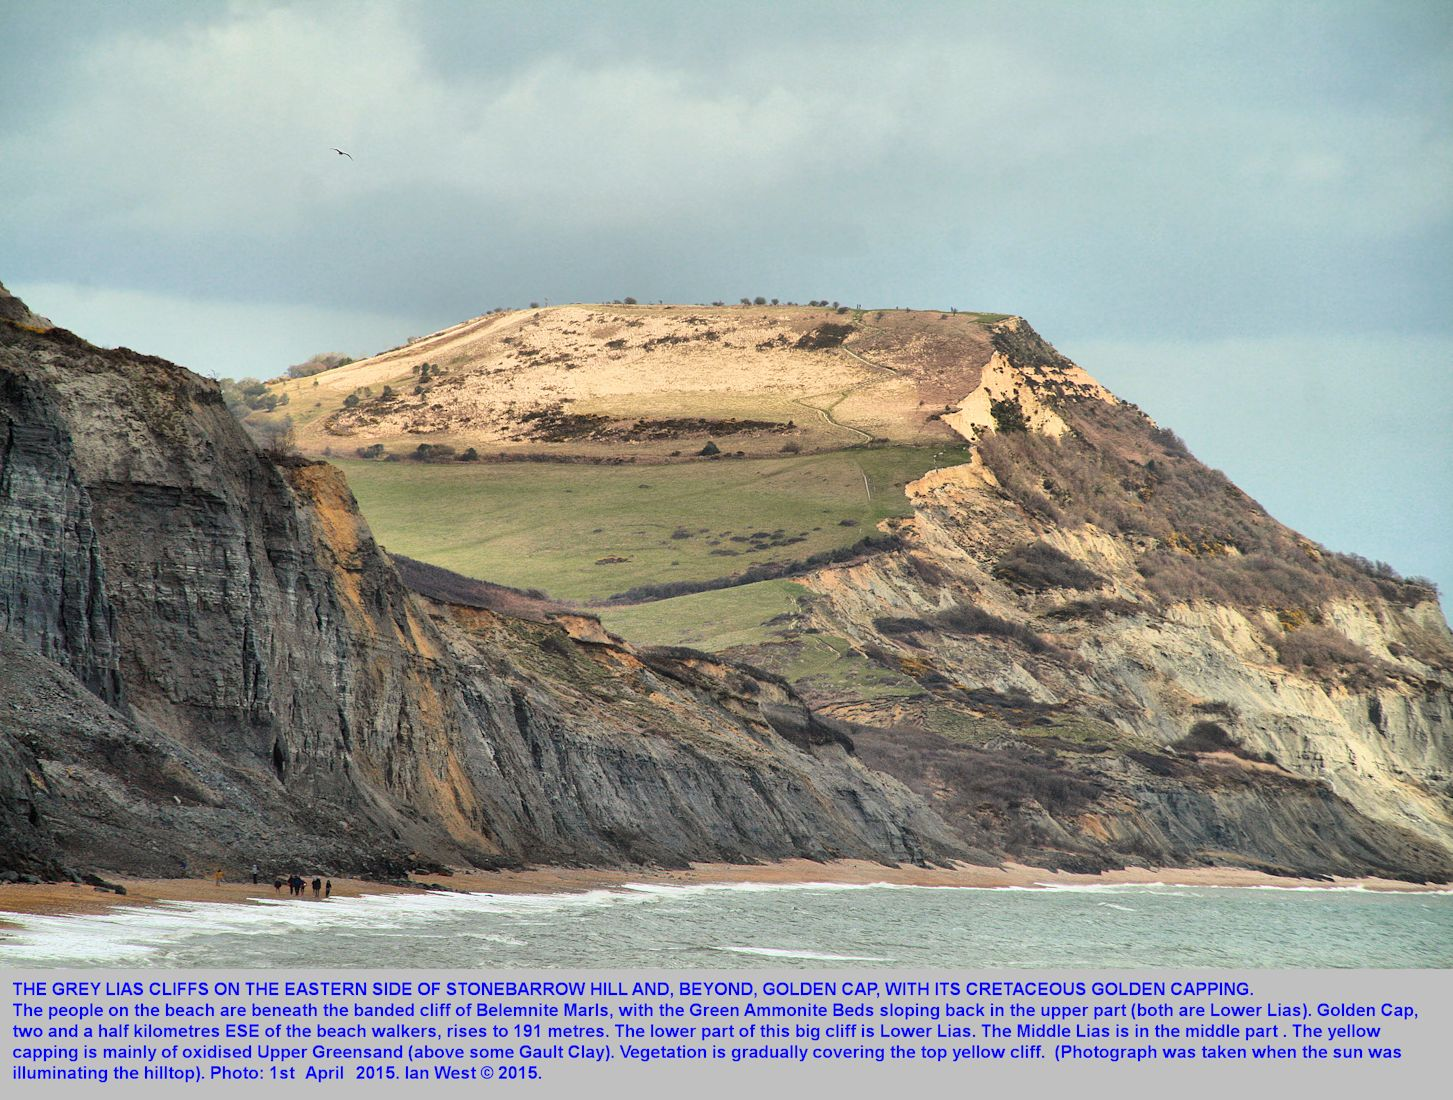 The cliffs of Belemnite Marls, Lias, on the east side of Stonebarrow Hill, and Golden Cap beyond, illuminated by the sun, east of Charmouth, Dorset, 1st April 2015